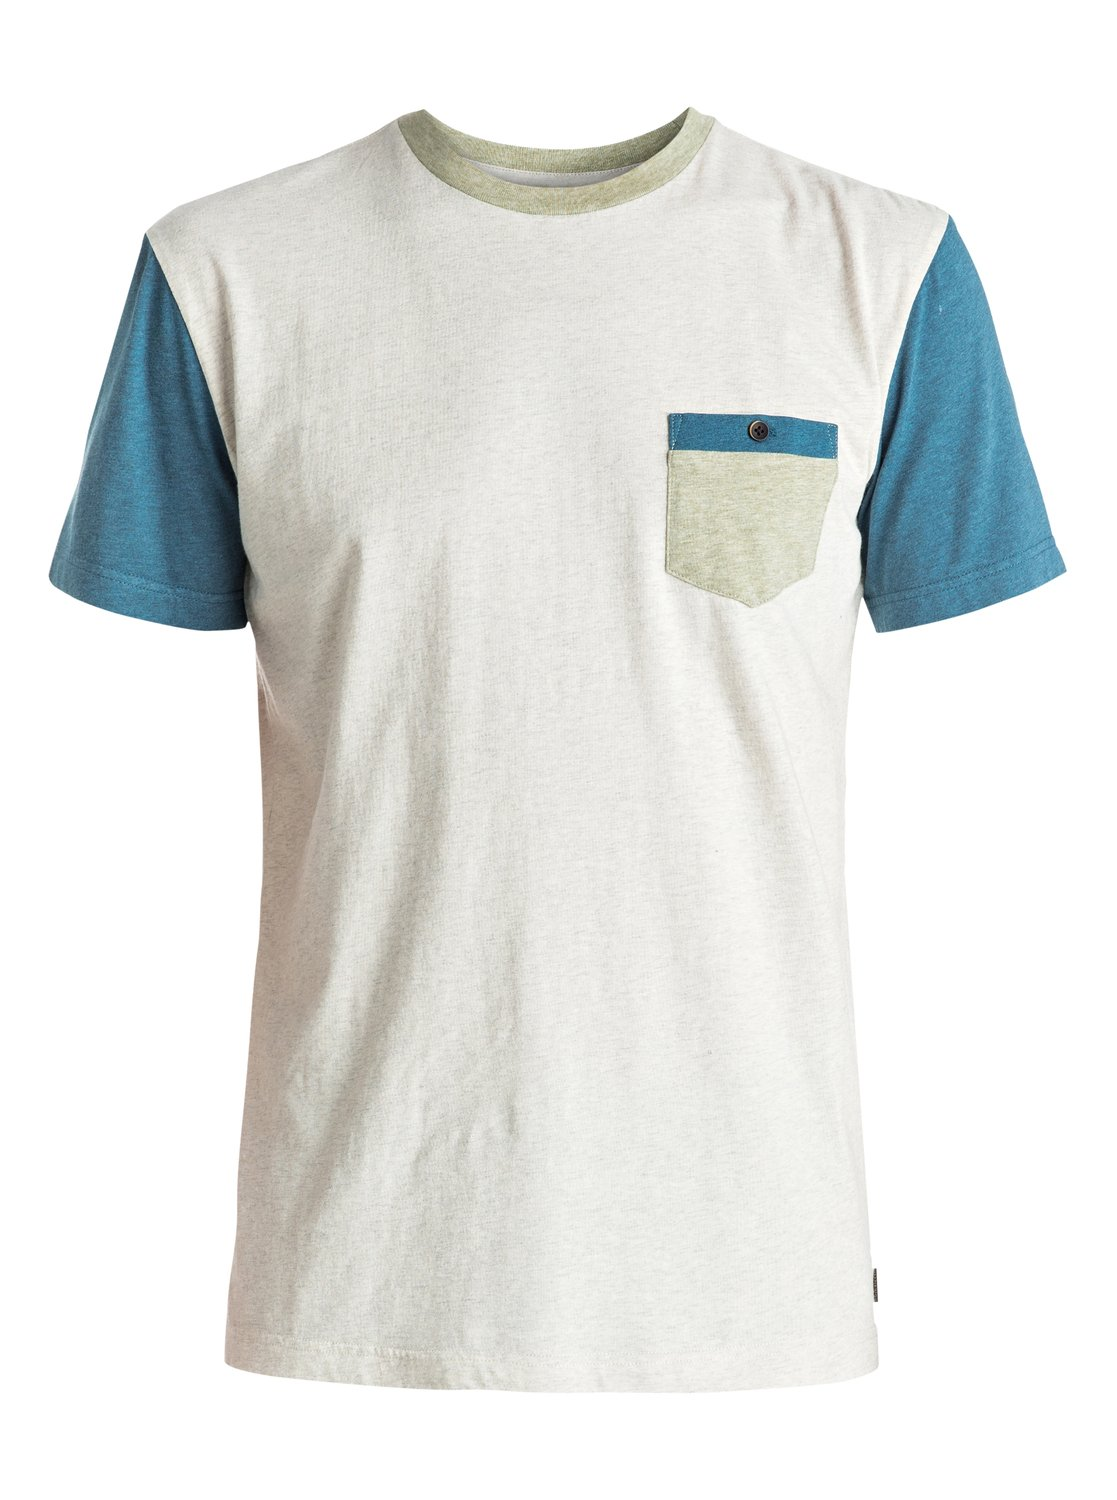 Baysic - tee-shirt à poche pour homme - quiksilver